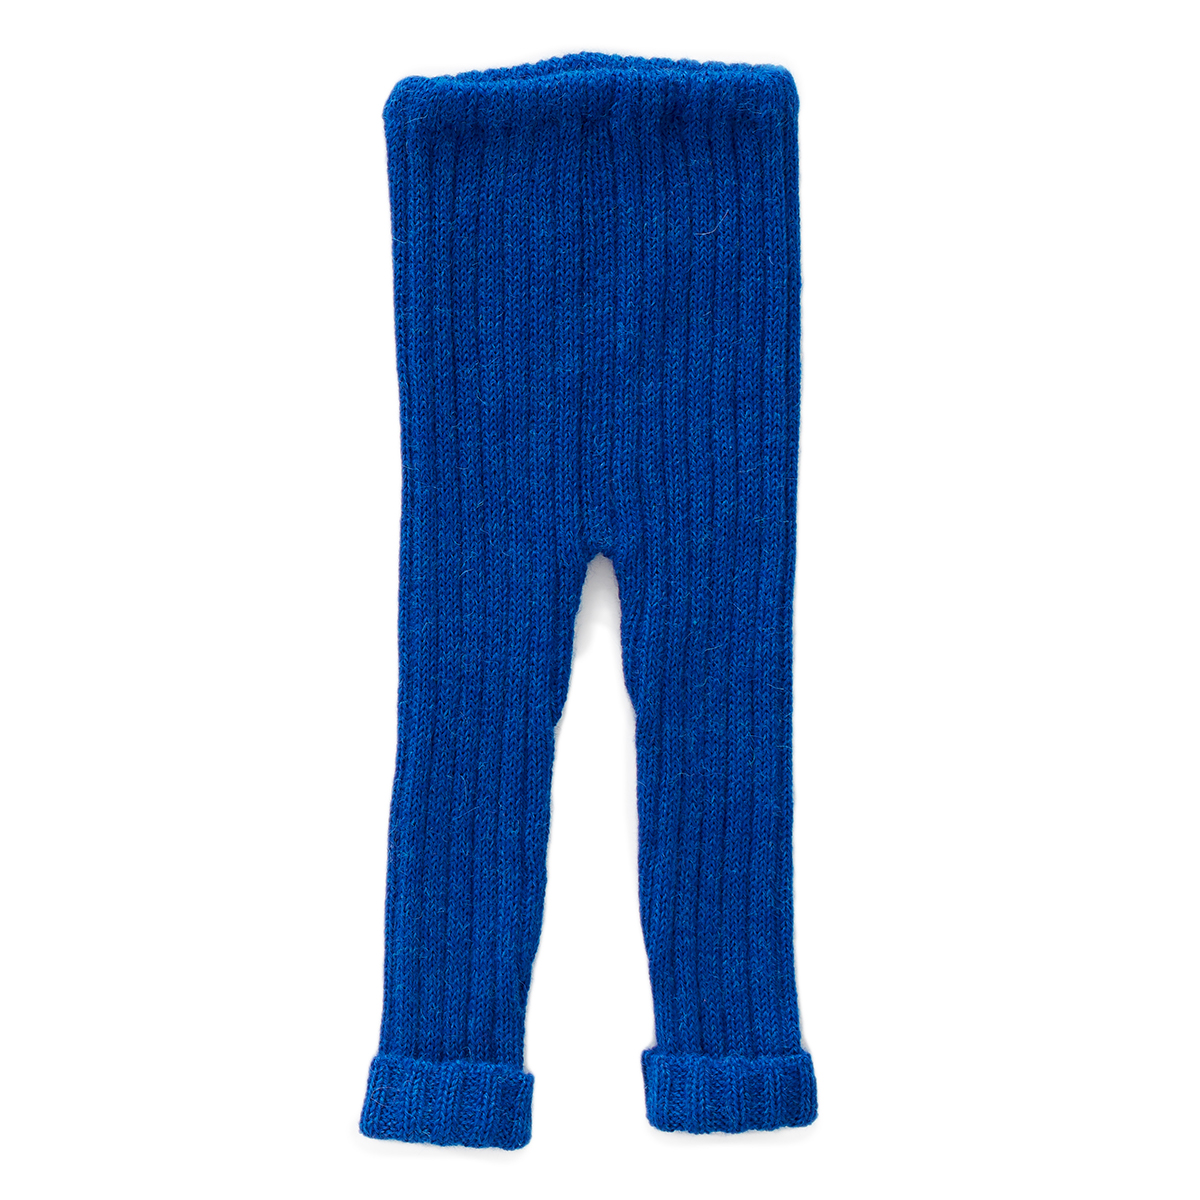 Oeuf Everyday Pant in Electric Blue